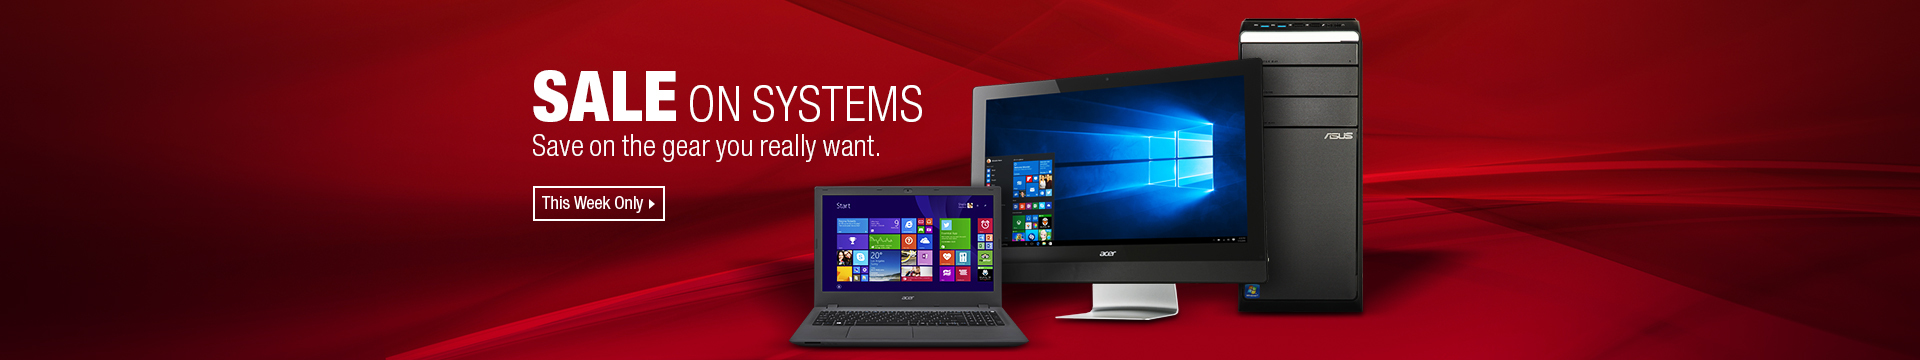 SALE ON SYSTEMS